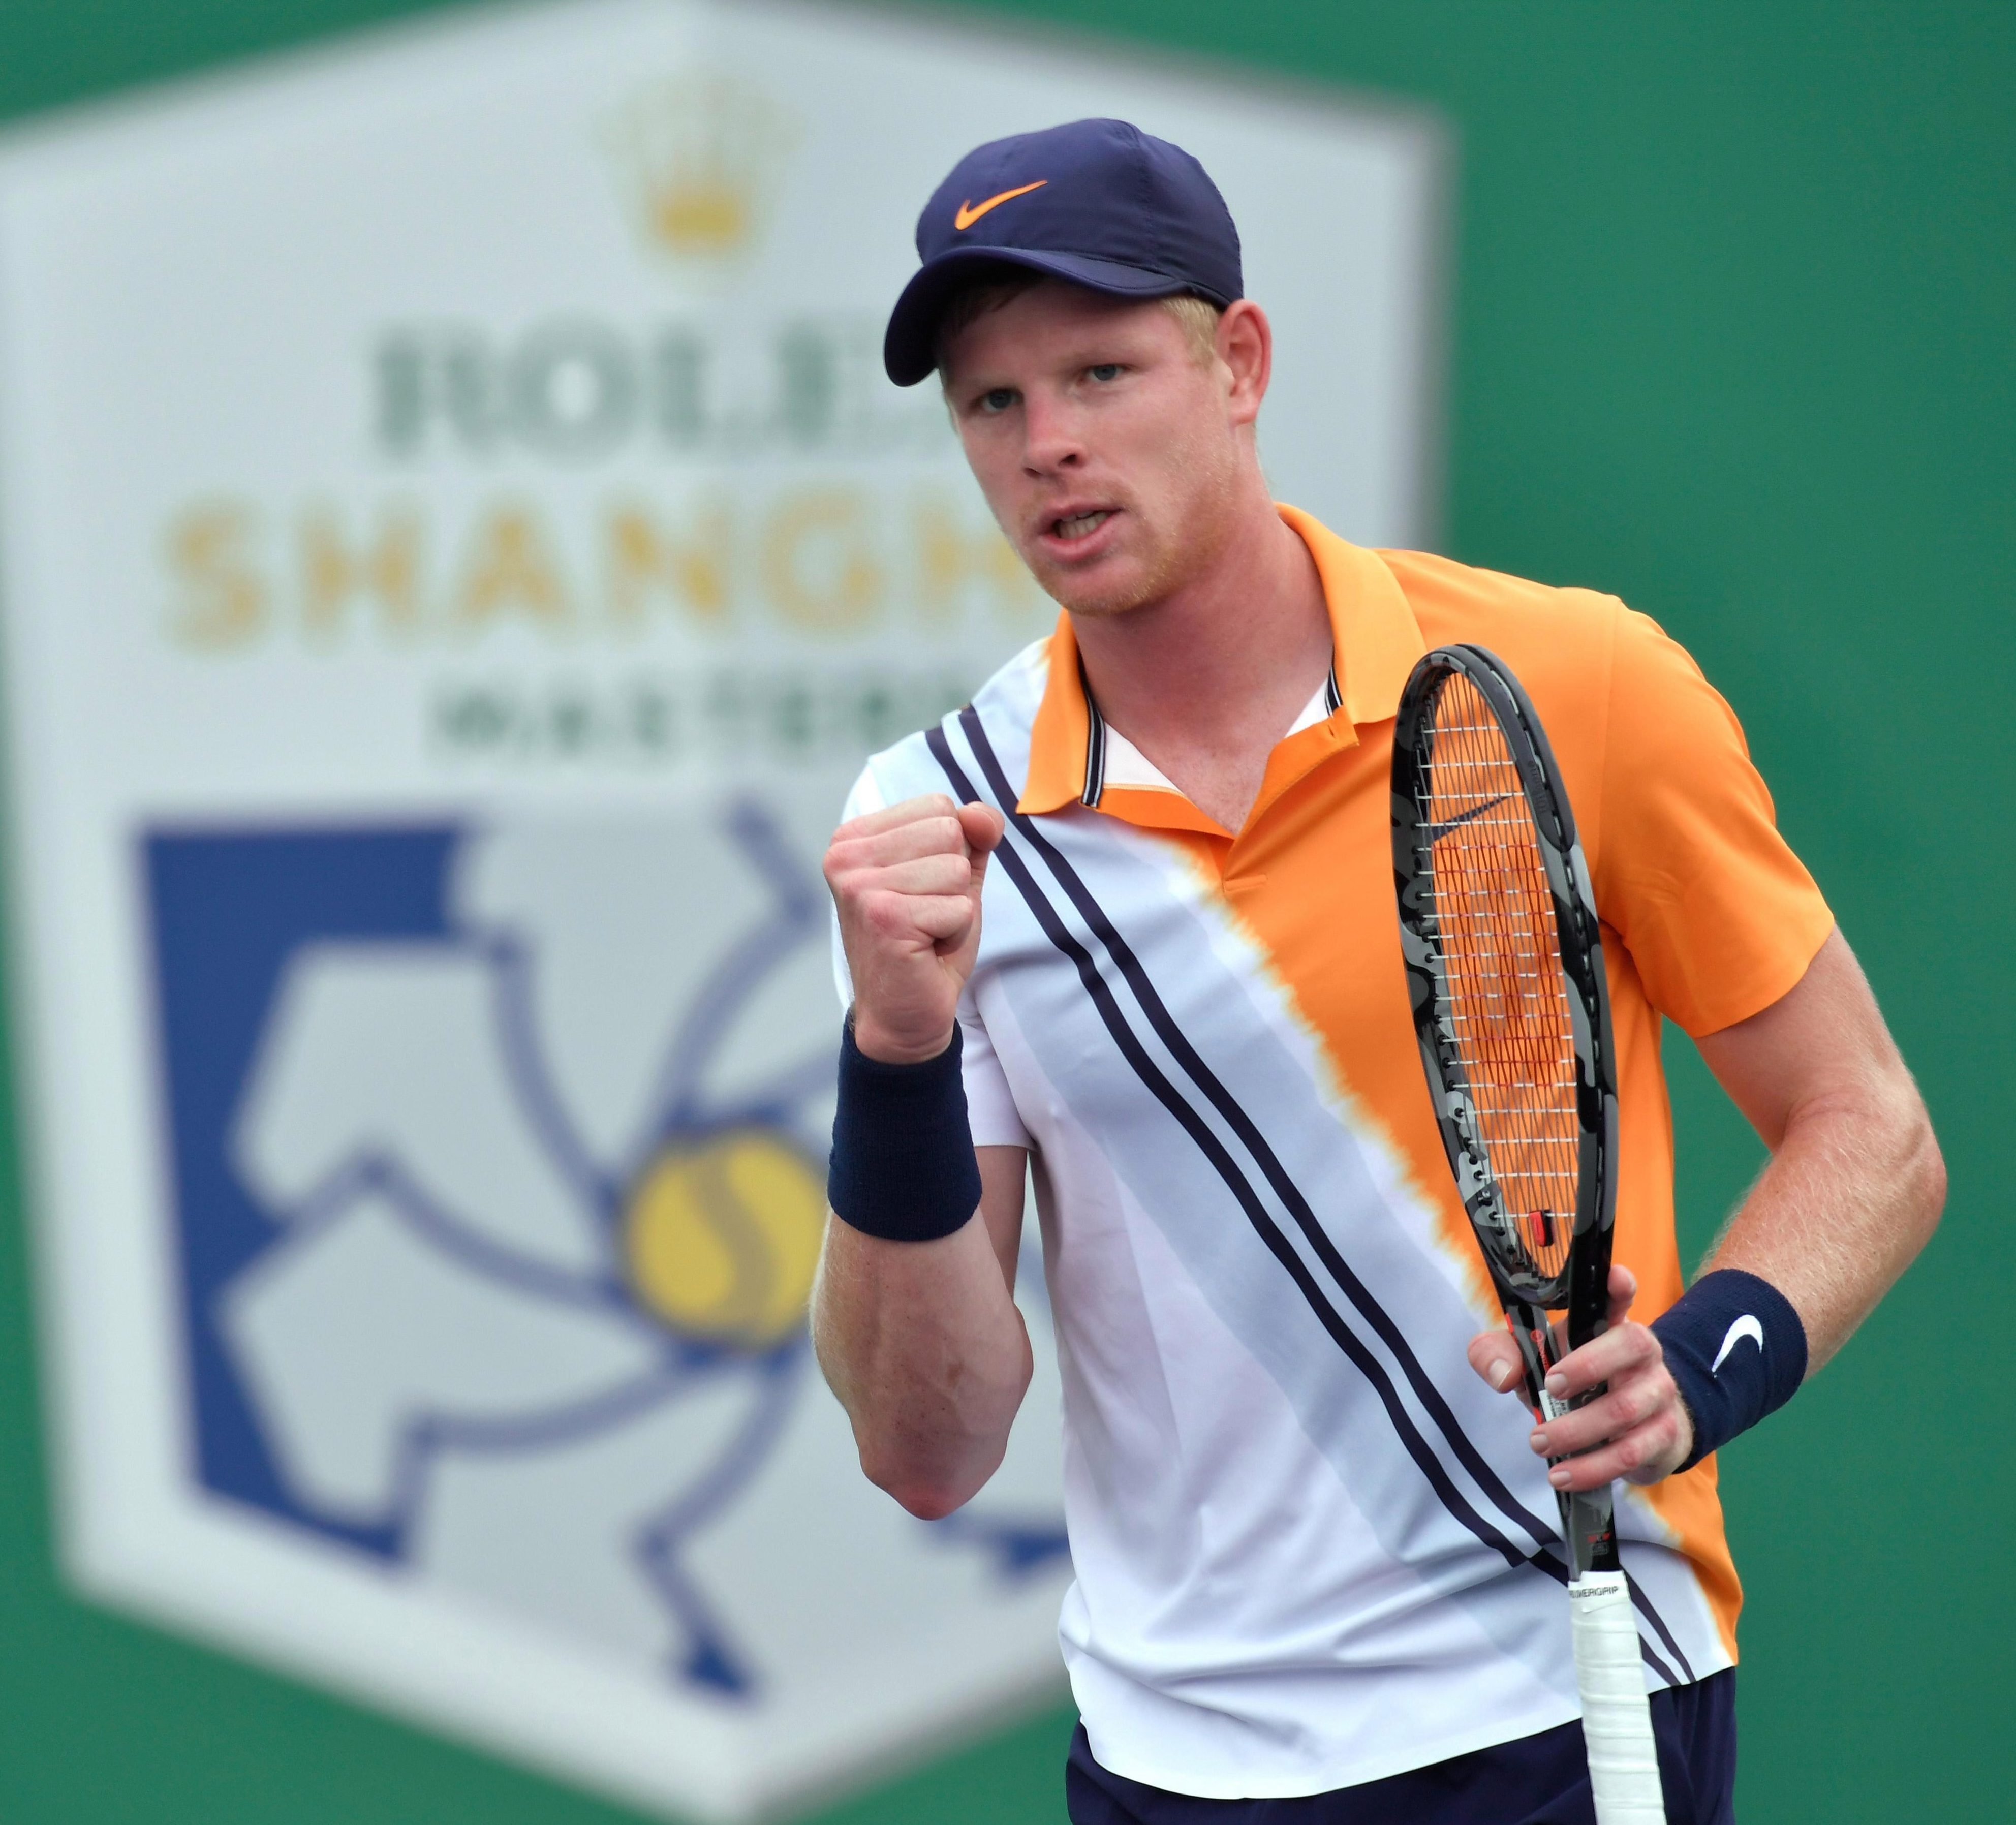 Kyle Edmund has emerged as a world class talent in his own right since the injury problems for the former long-running British No1 Andy Murray